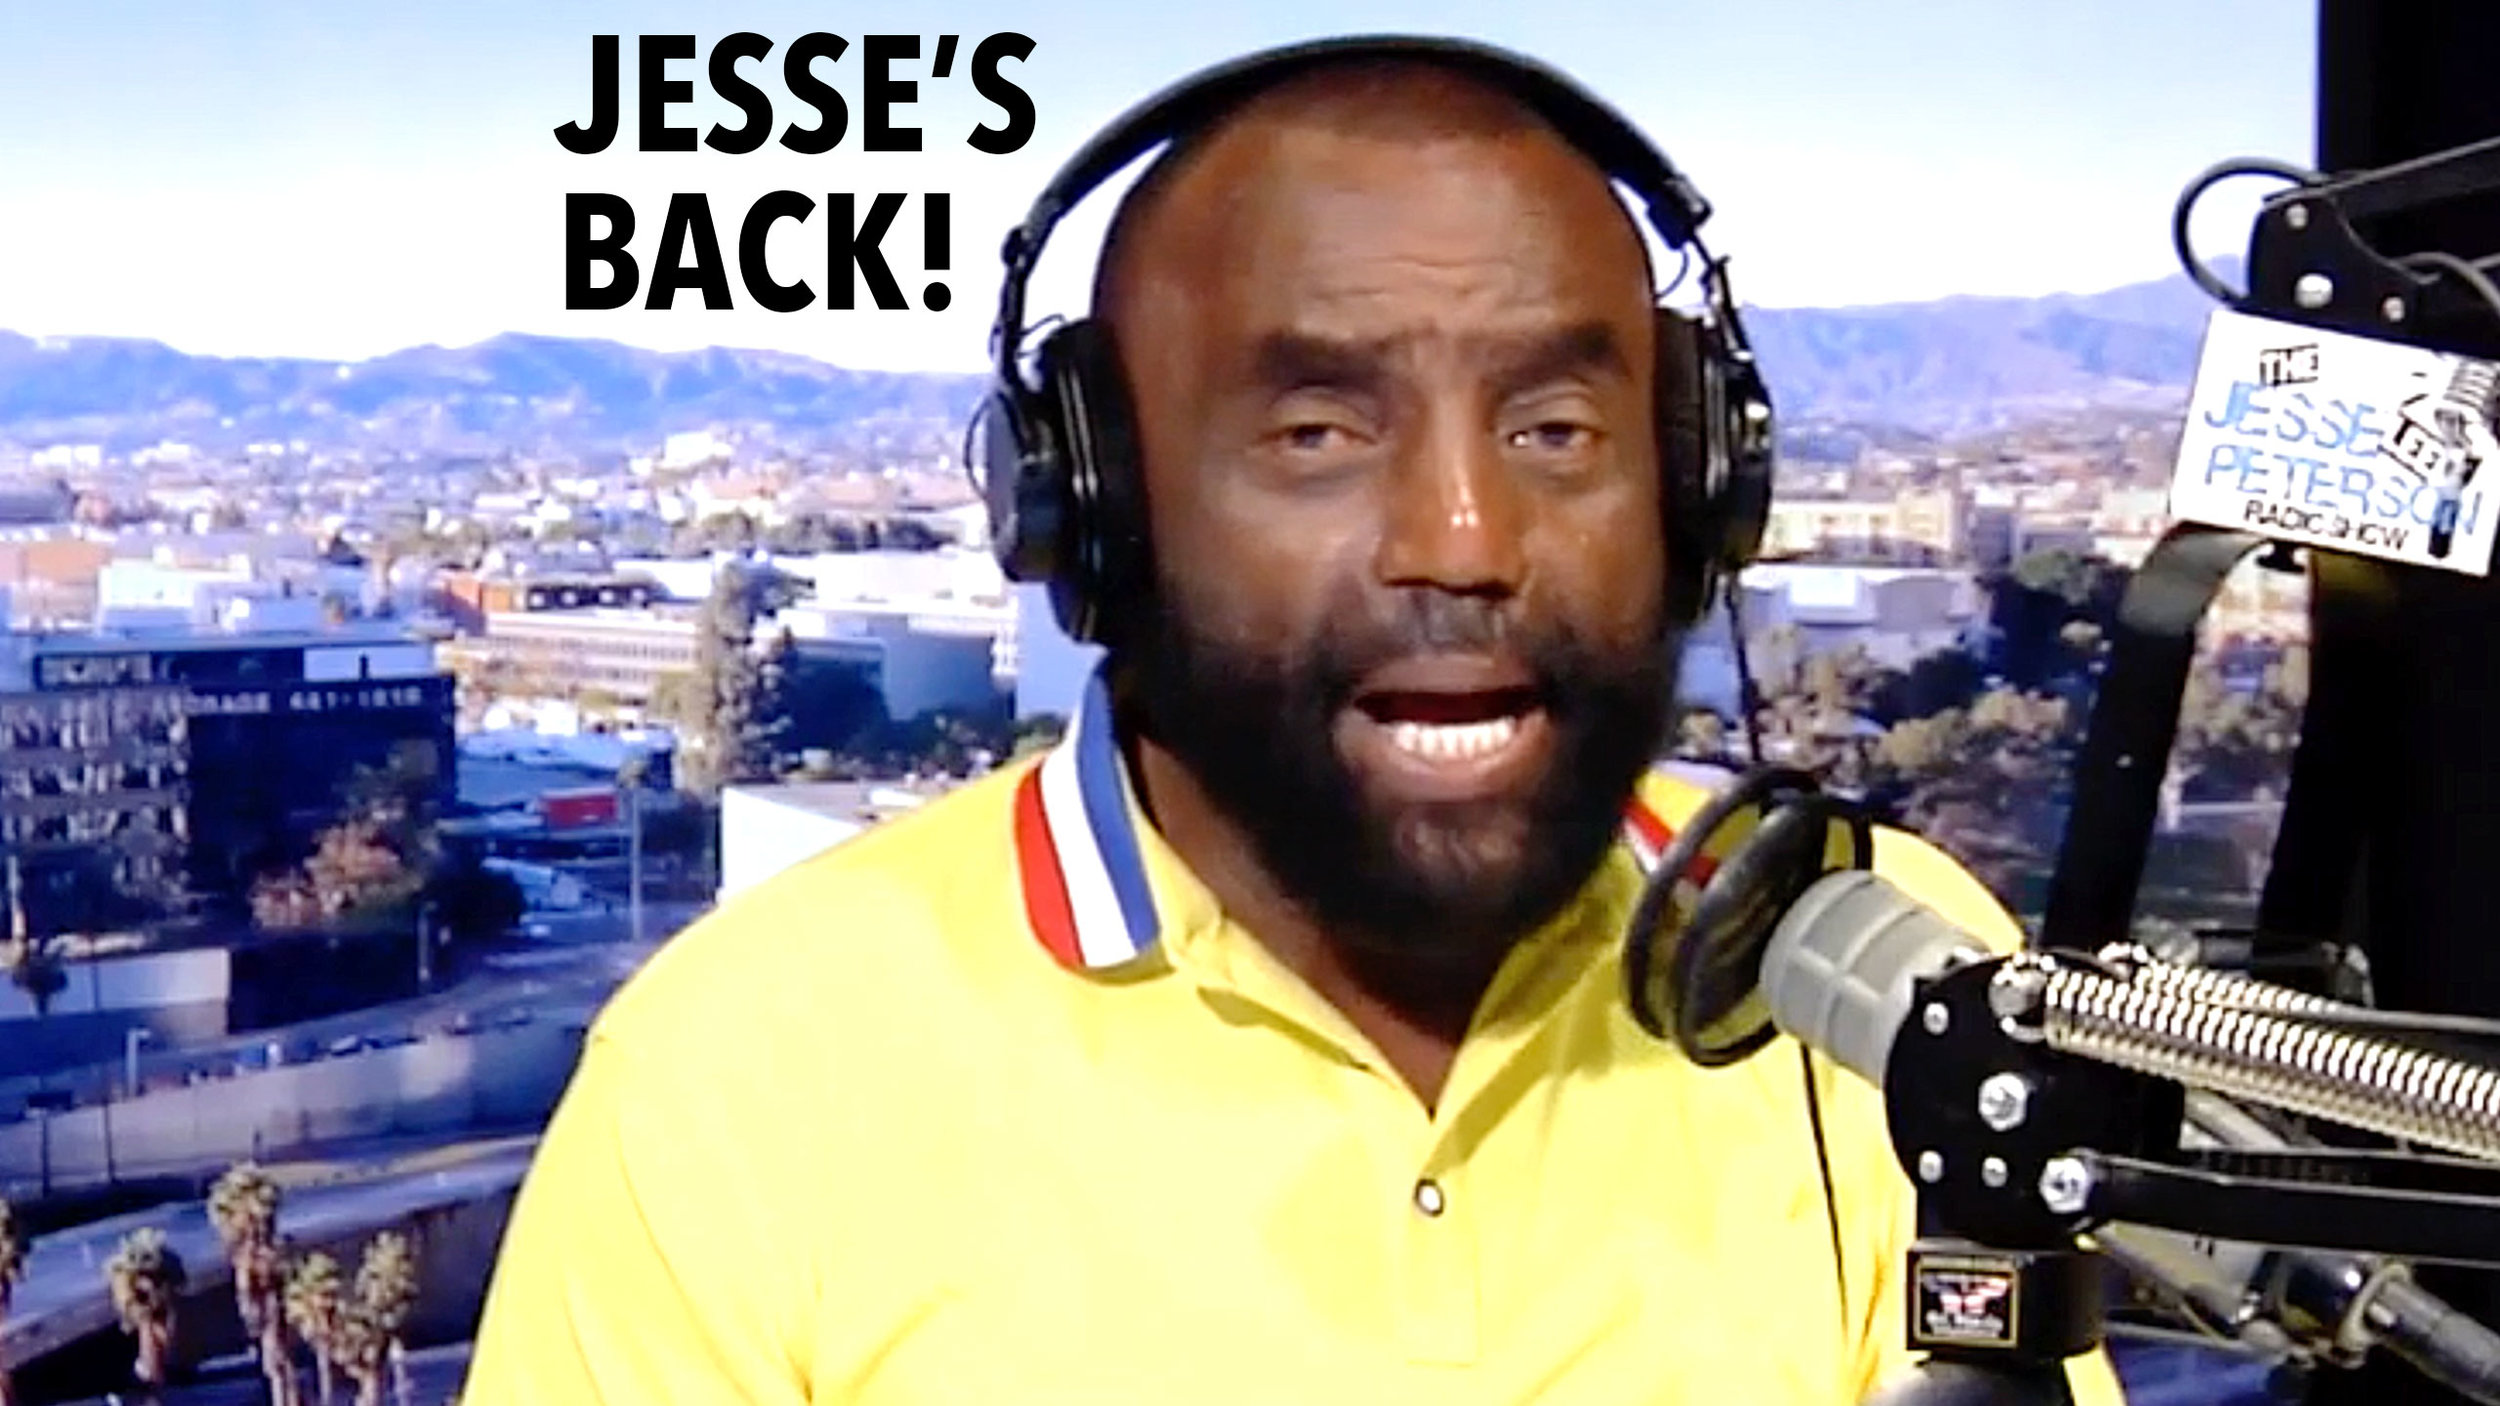 Thumbnail from today's show: Jesse's back! (guest hosting)